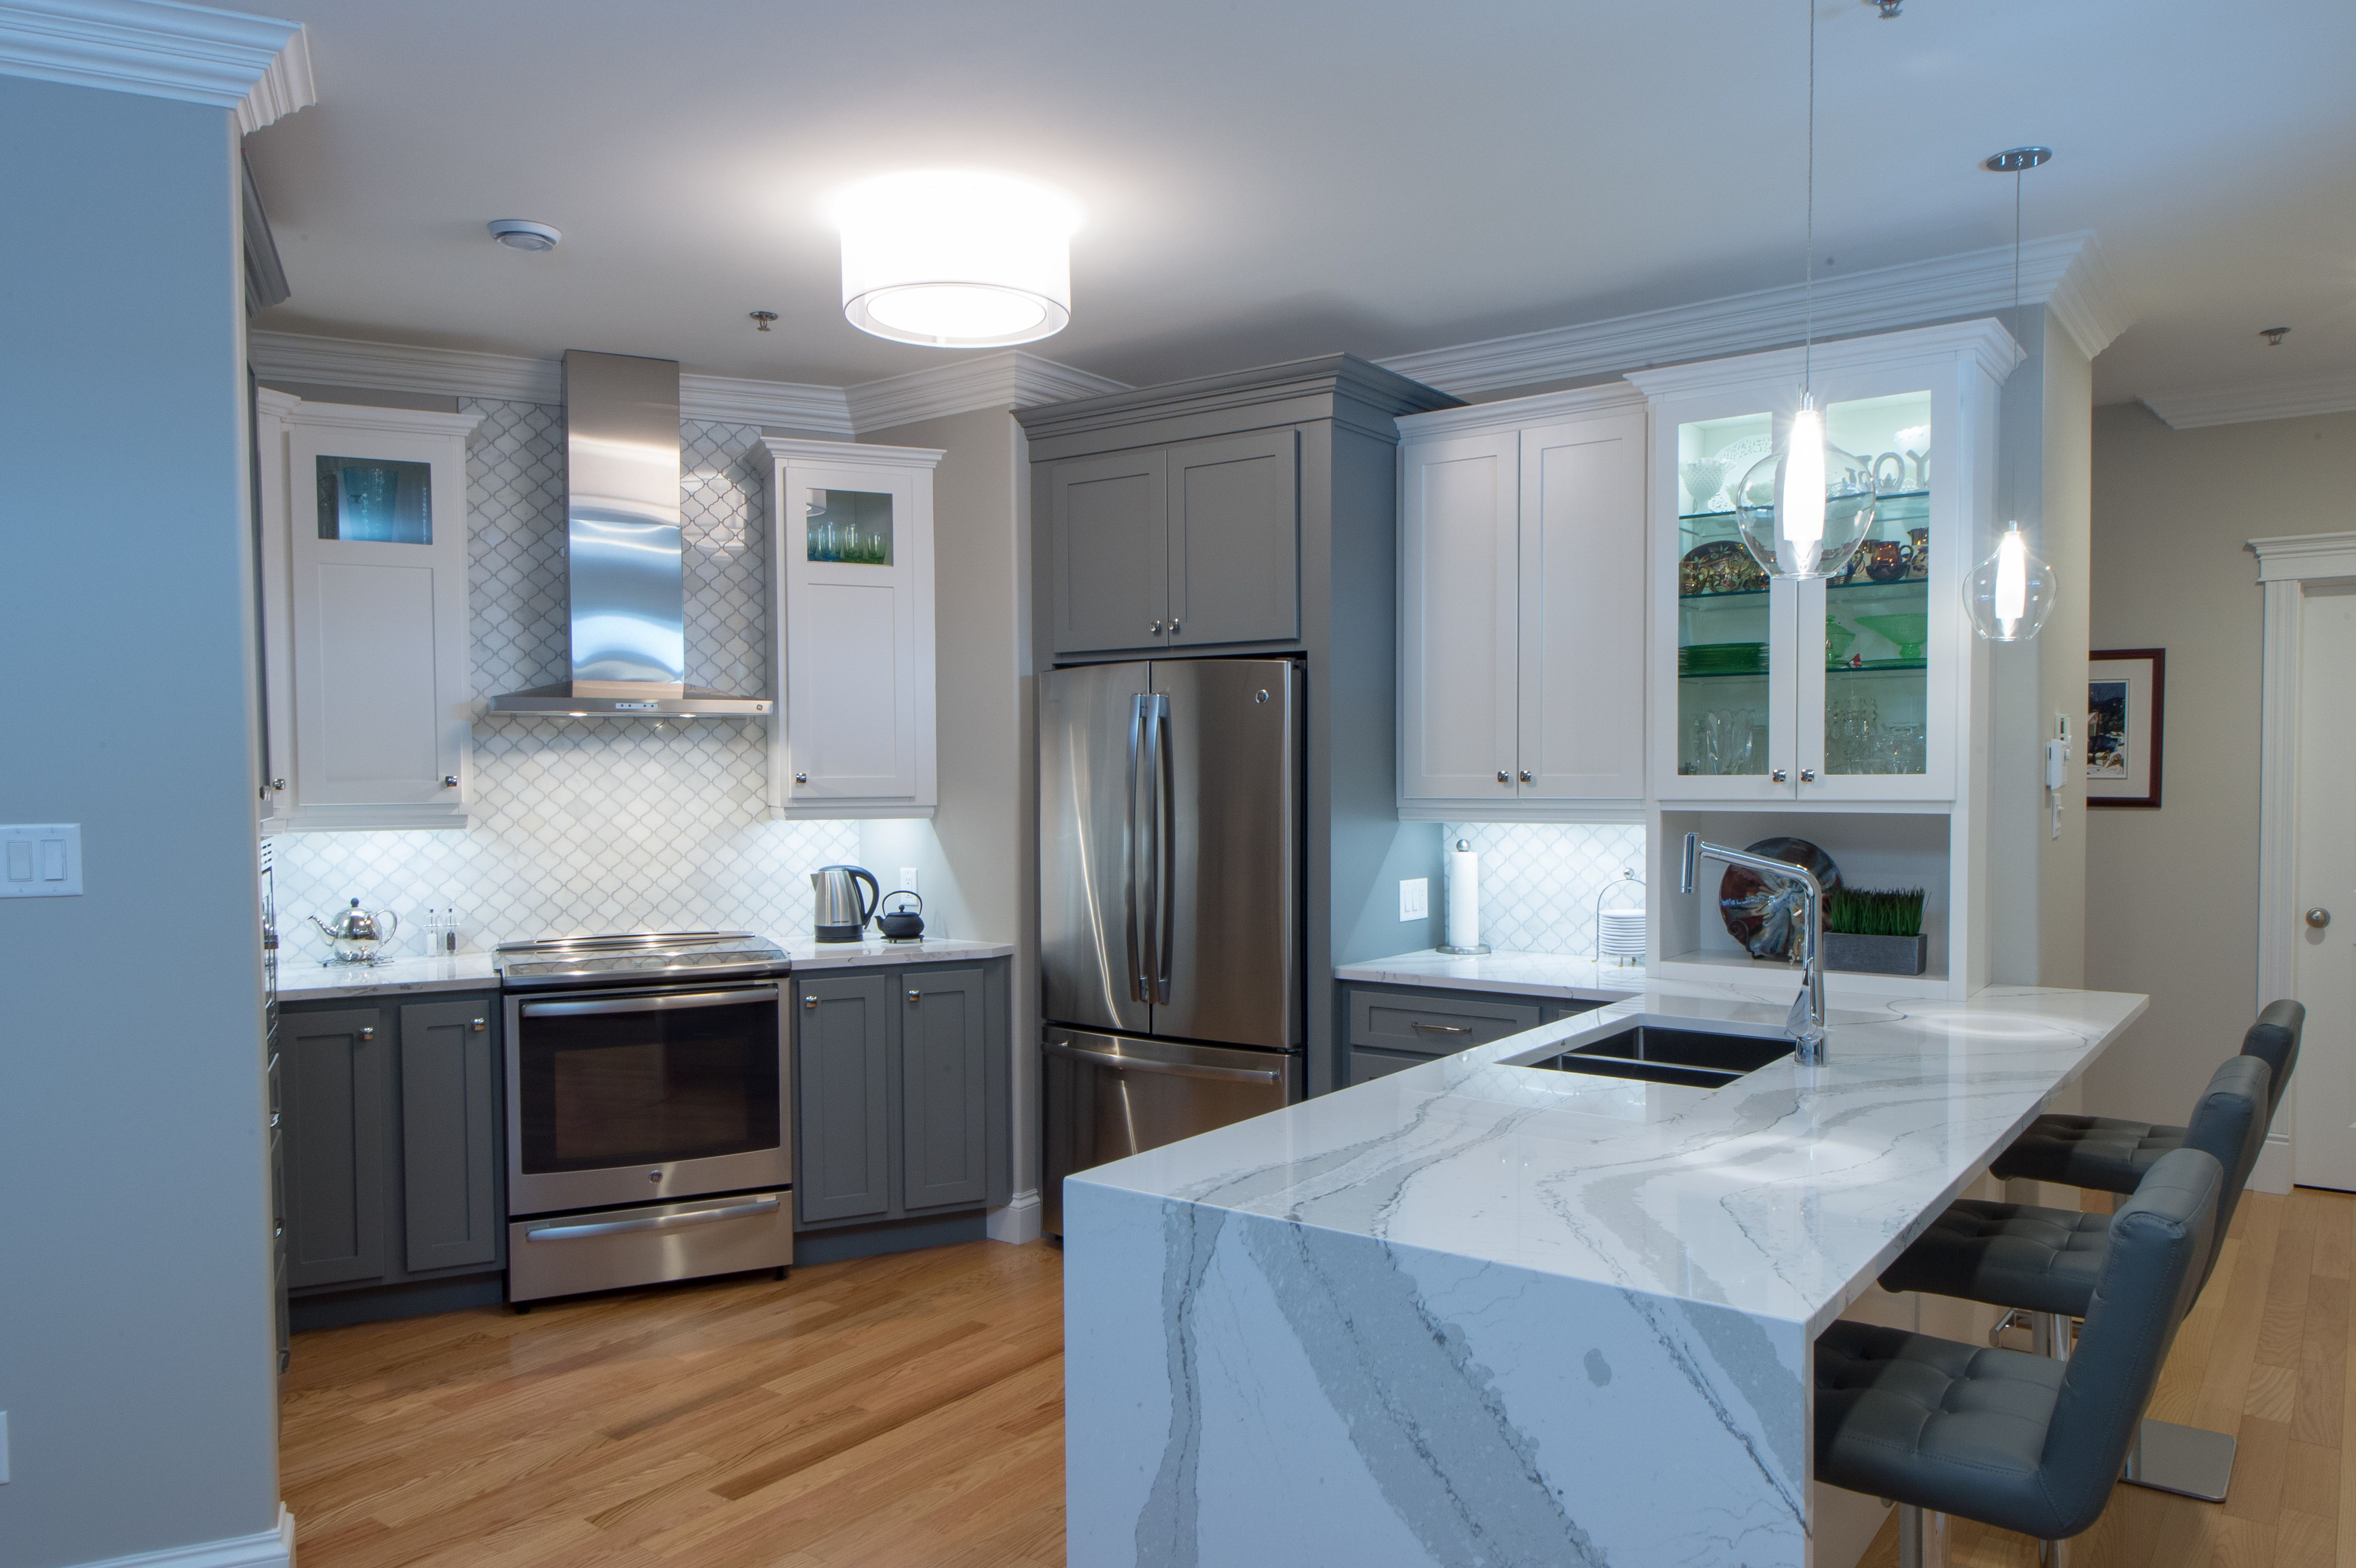 Custom Kitchen Cabinets Designed And Purchased From Hubcraft Timber Mart Come In Custom Kitchen Cabinets Design Custom Kitchen Cabinets Kitchen Utensils Store